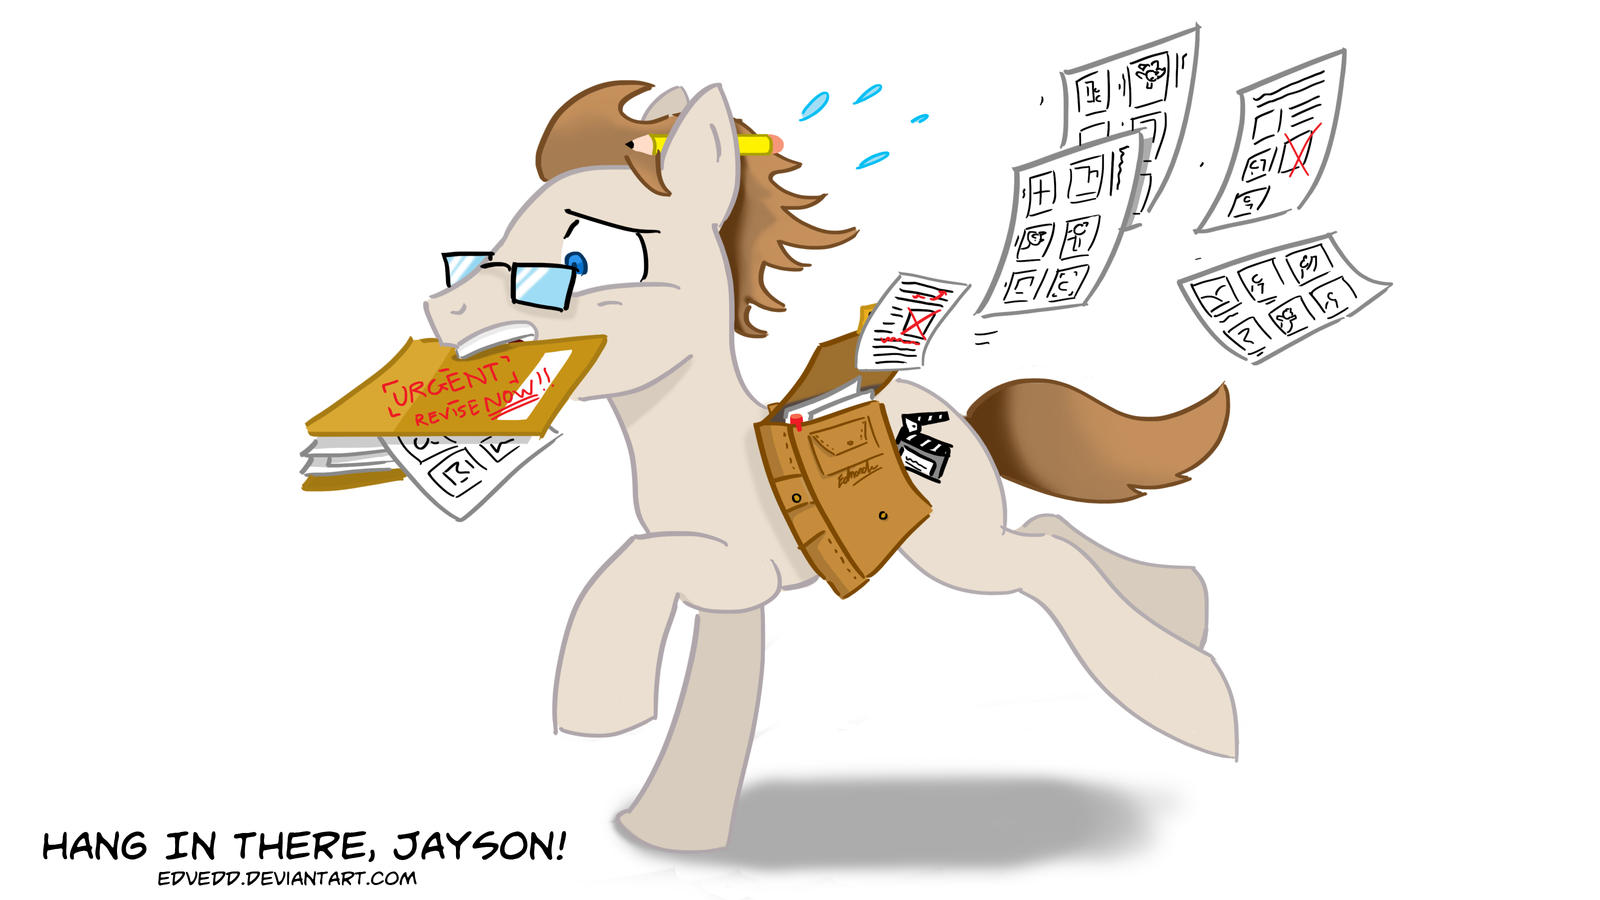 mlpsm jayson thiessen by edvedd on deviantart